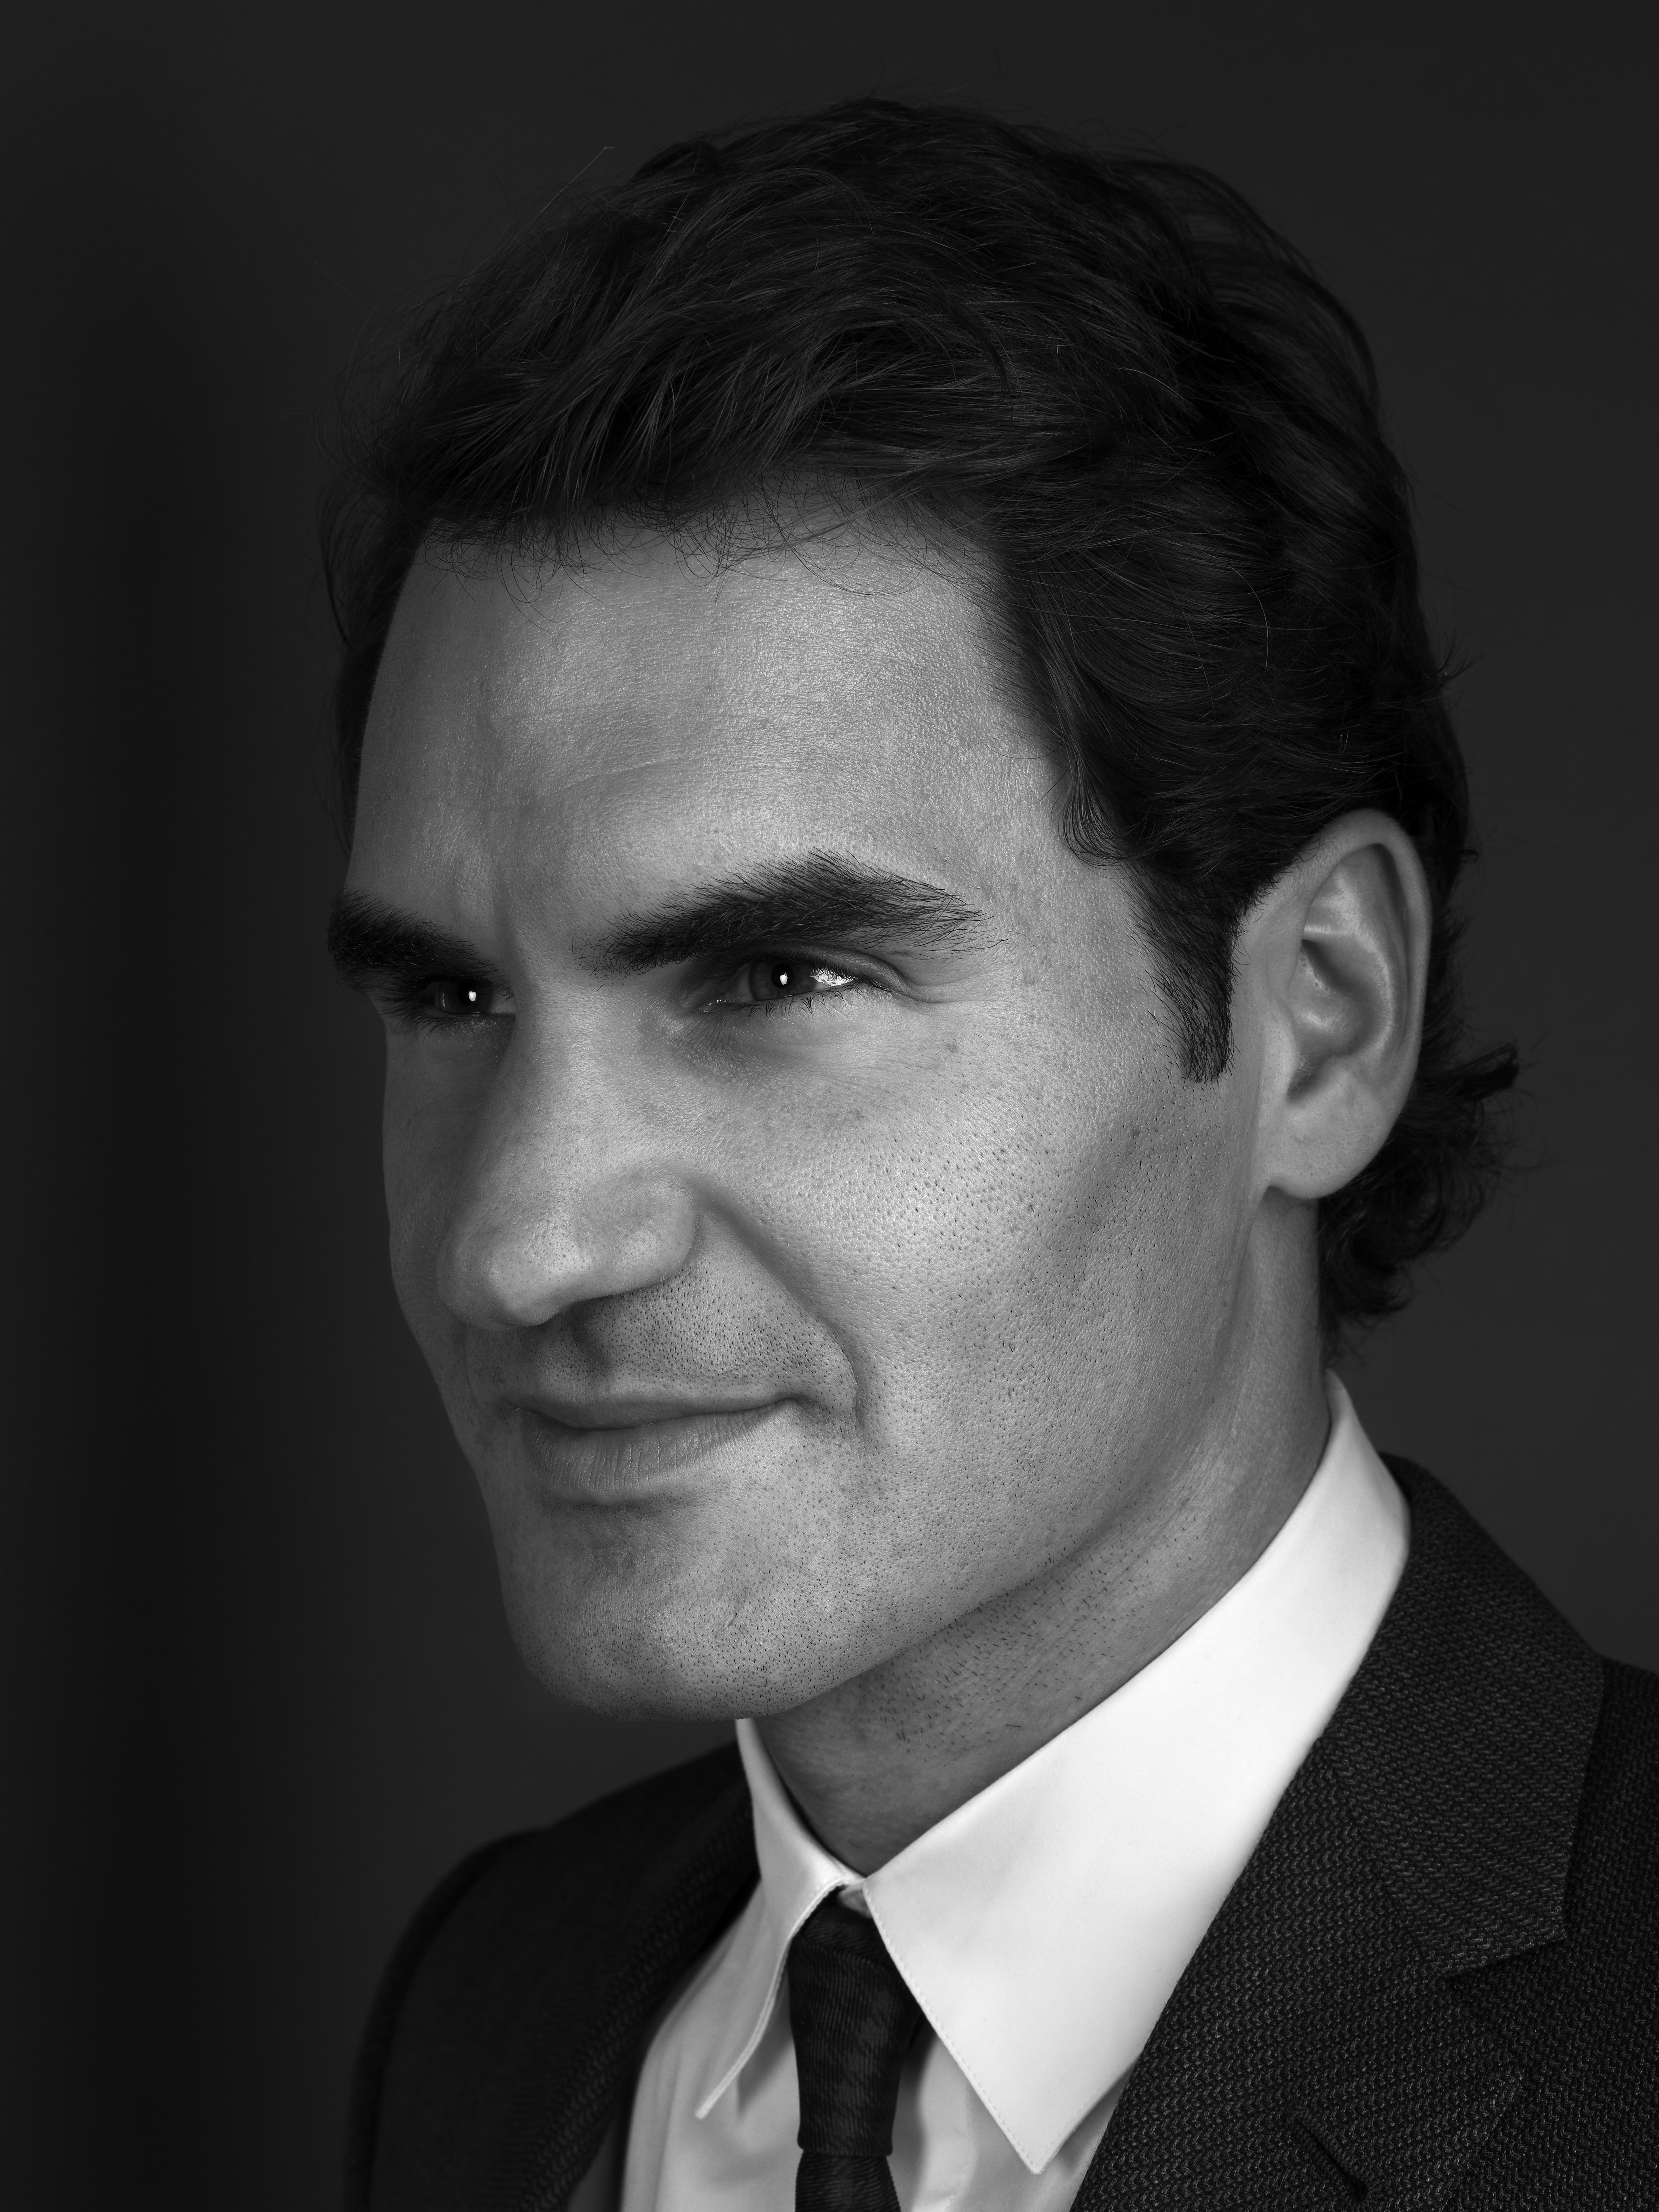 Pin By Remobuess Photography On Portraits Roger Federer Portrait Sports Hero